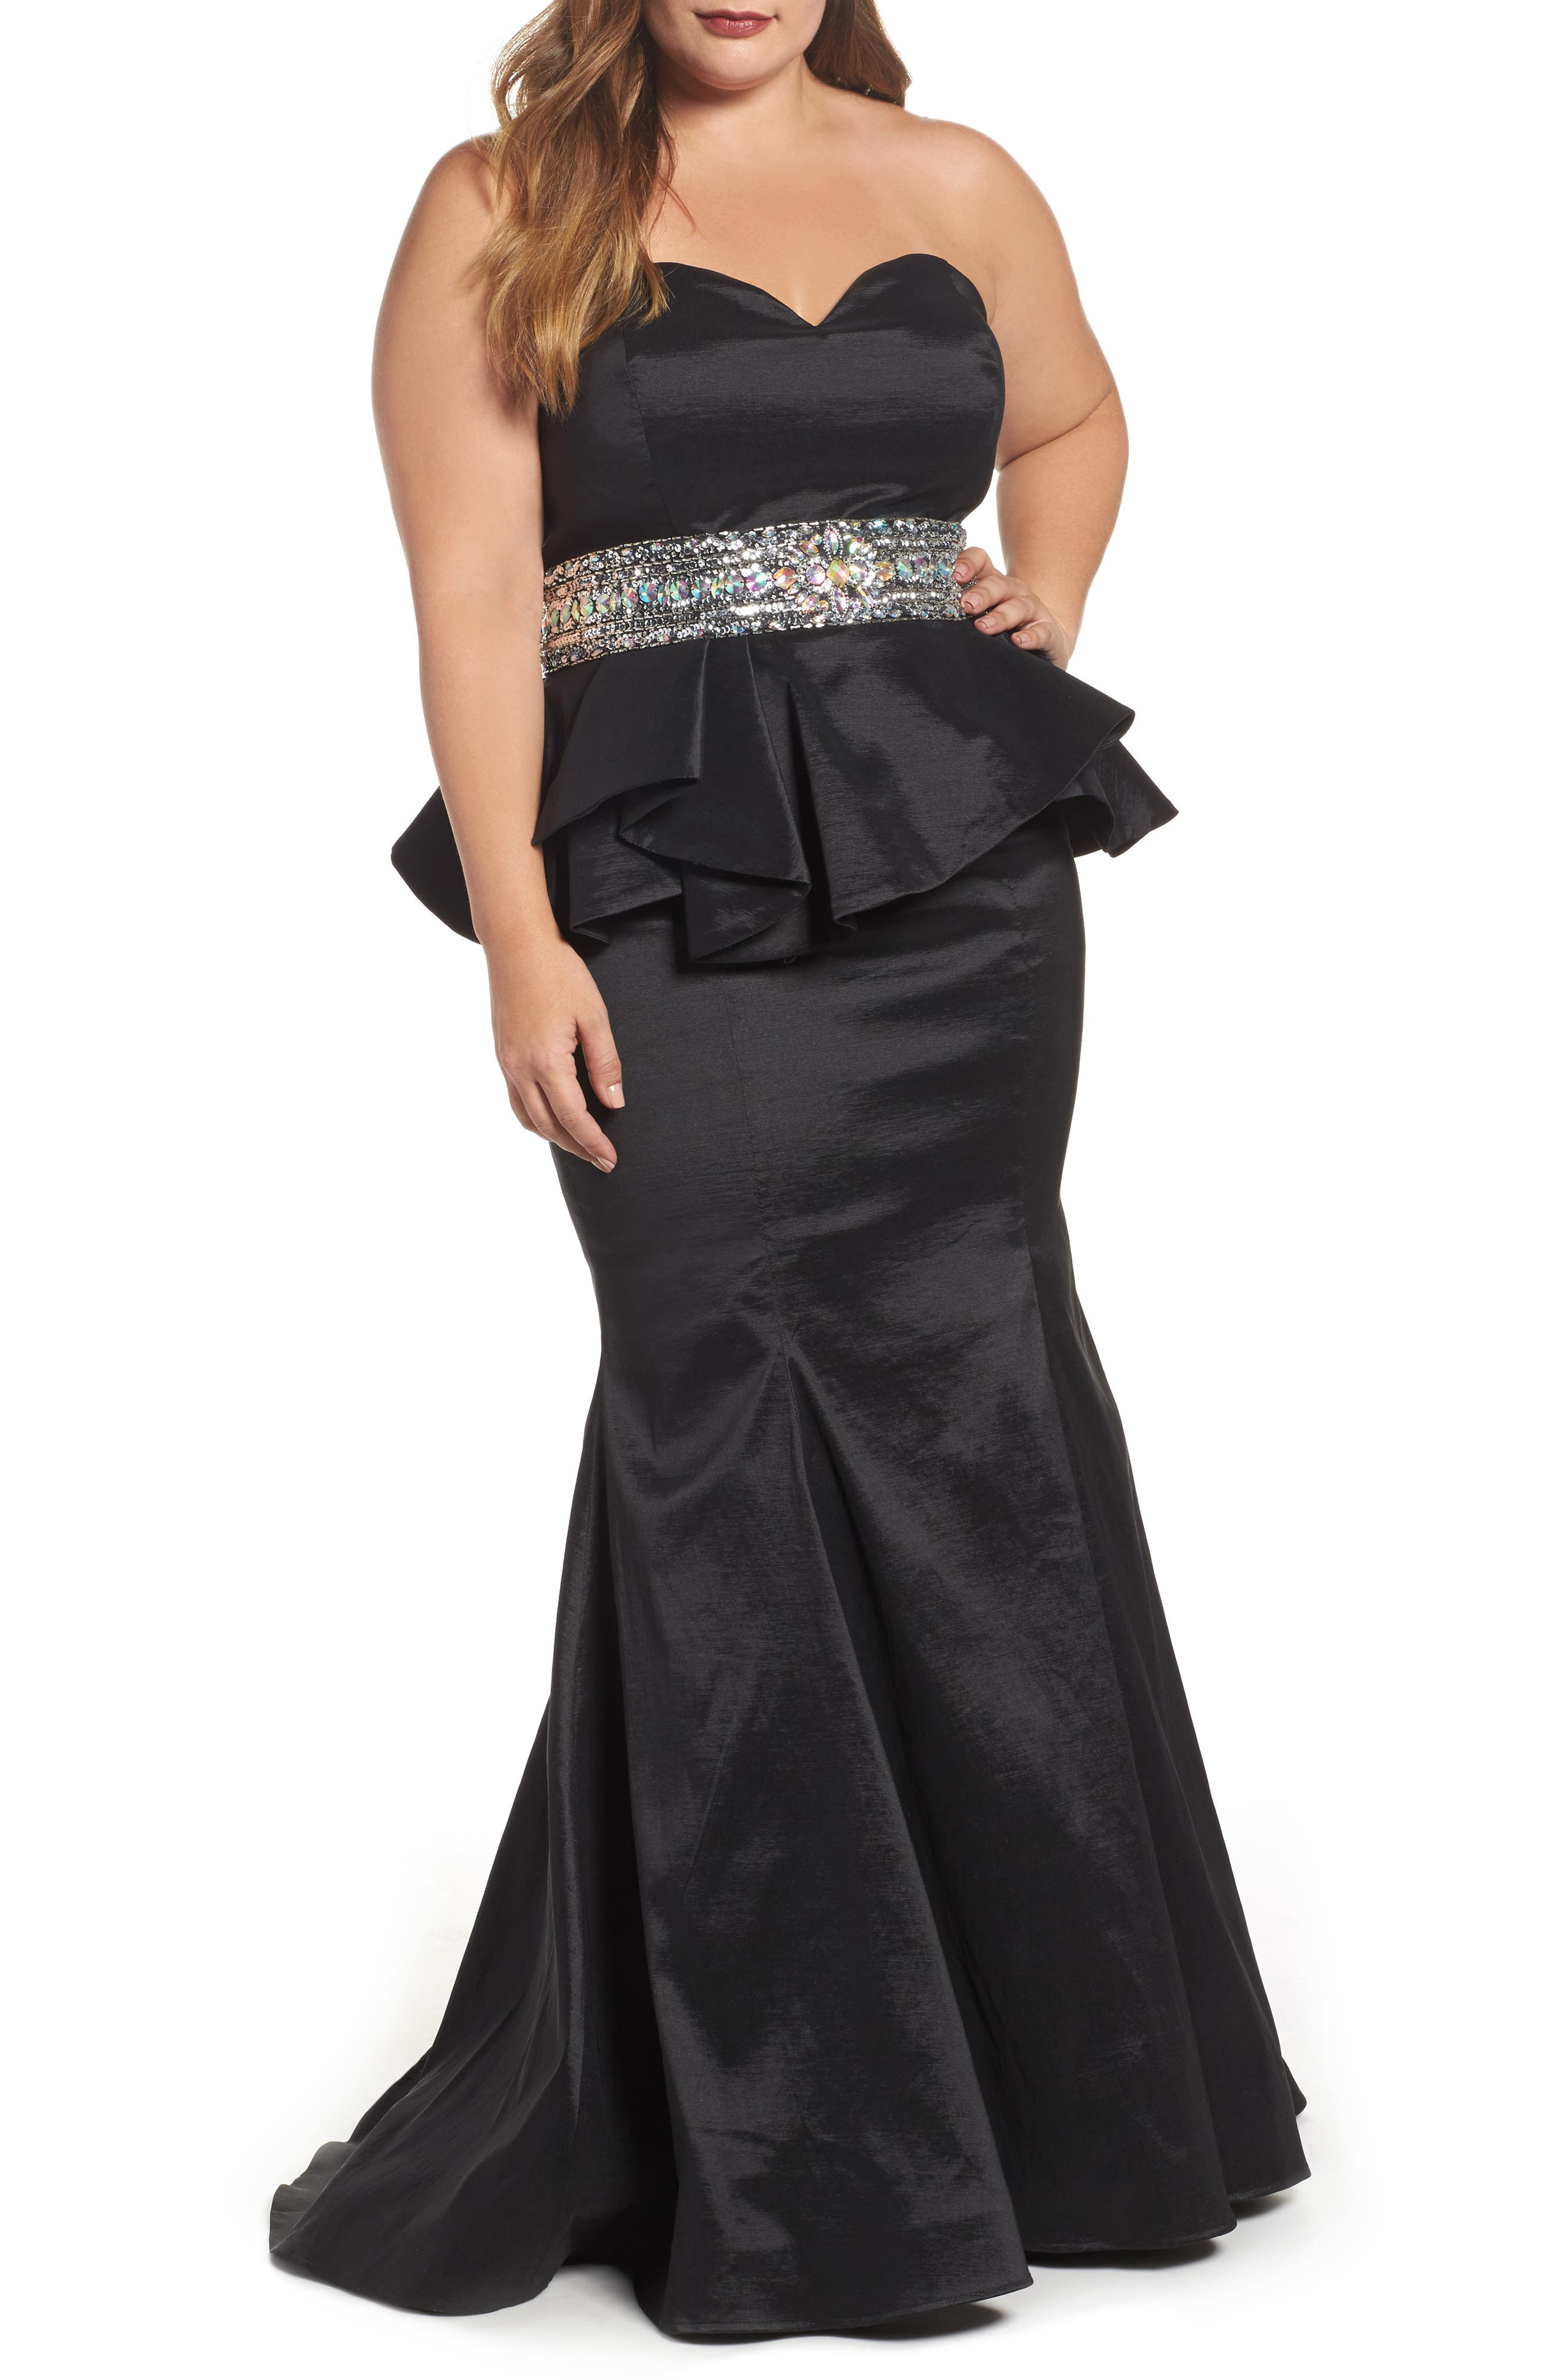 Beaded Bustier Peplum Gown,                             Main thumbnail 1, color,                             001